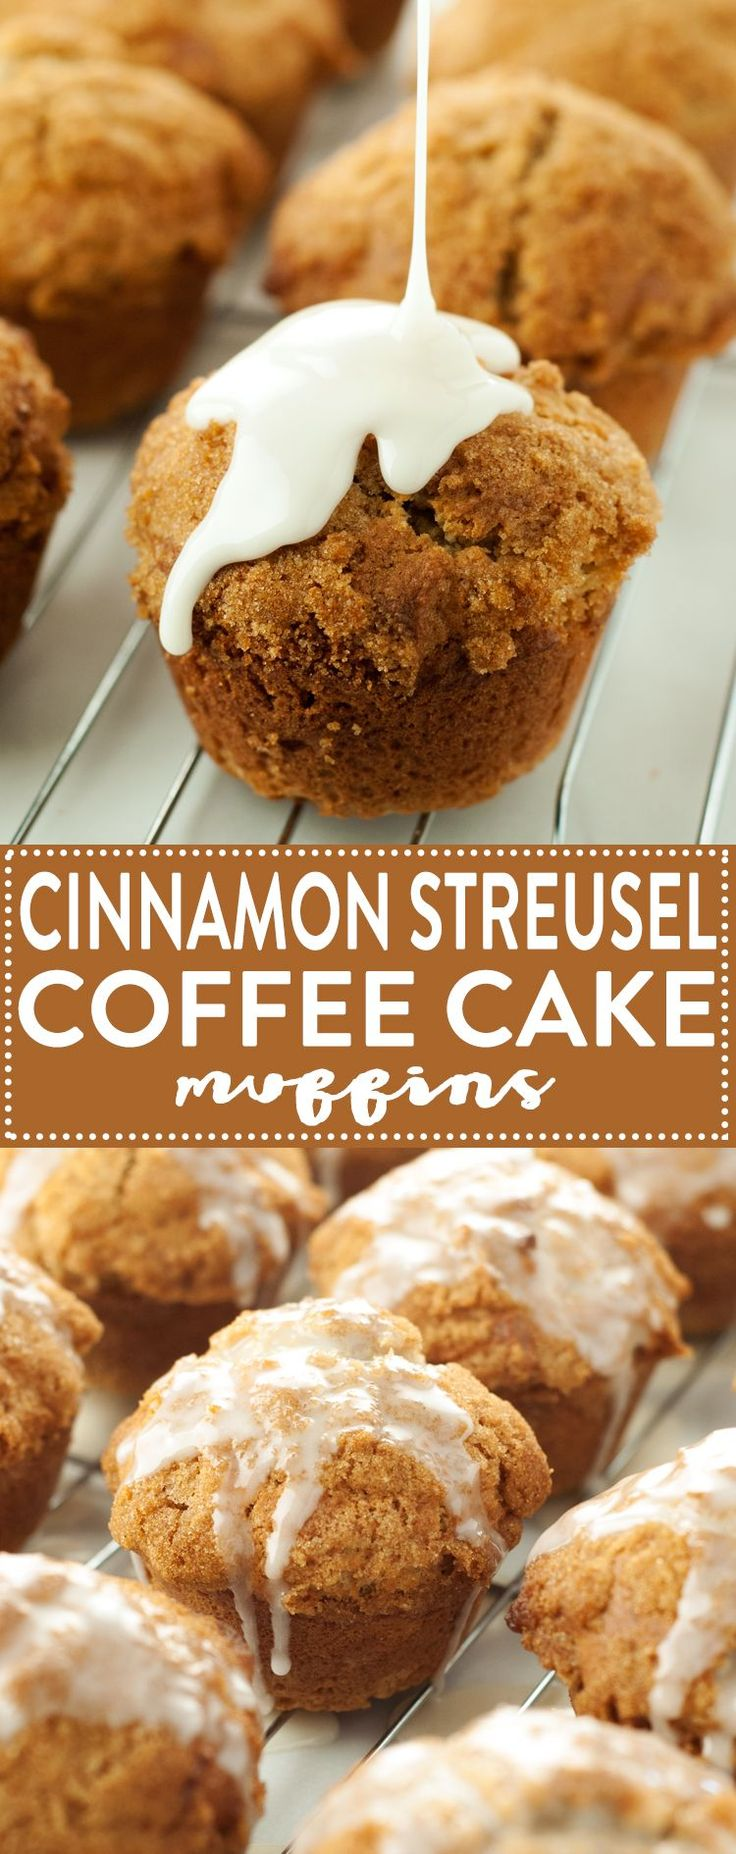 CAPPUCCINO CHOCOLATE CHIP MUFFINS - The Kitchy Kitchen